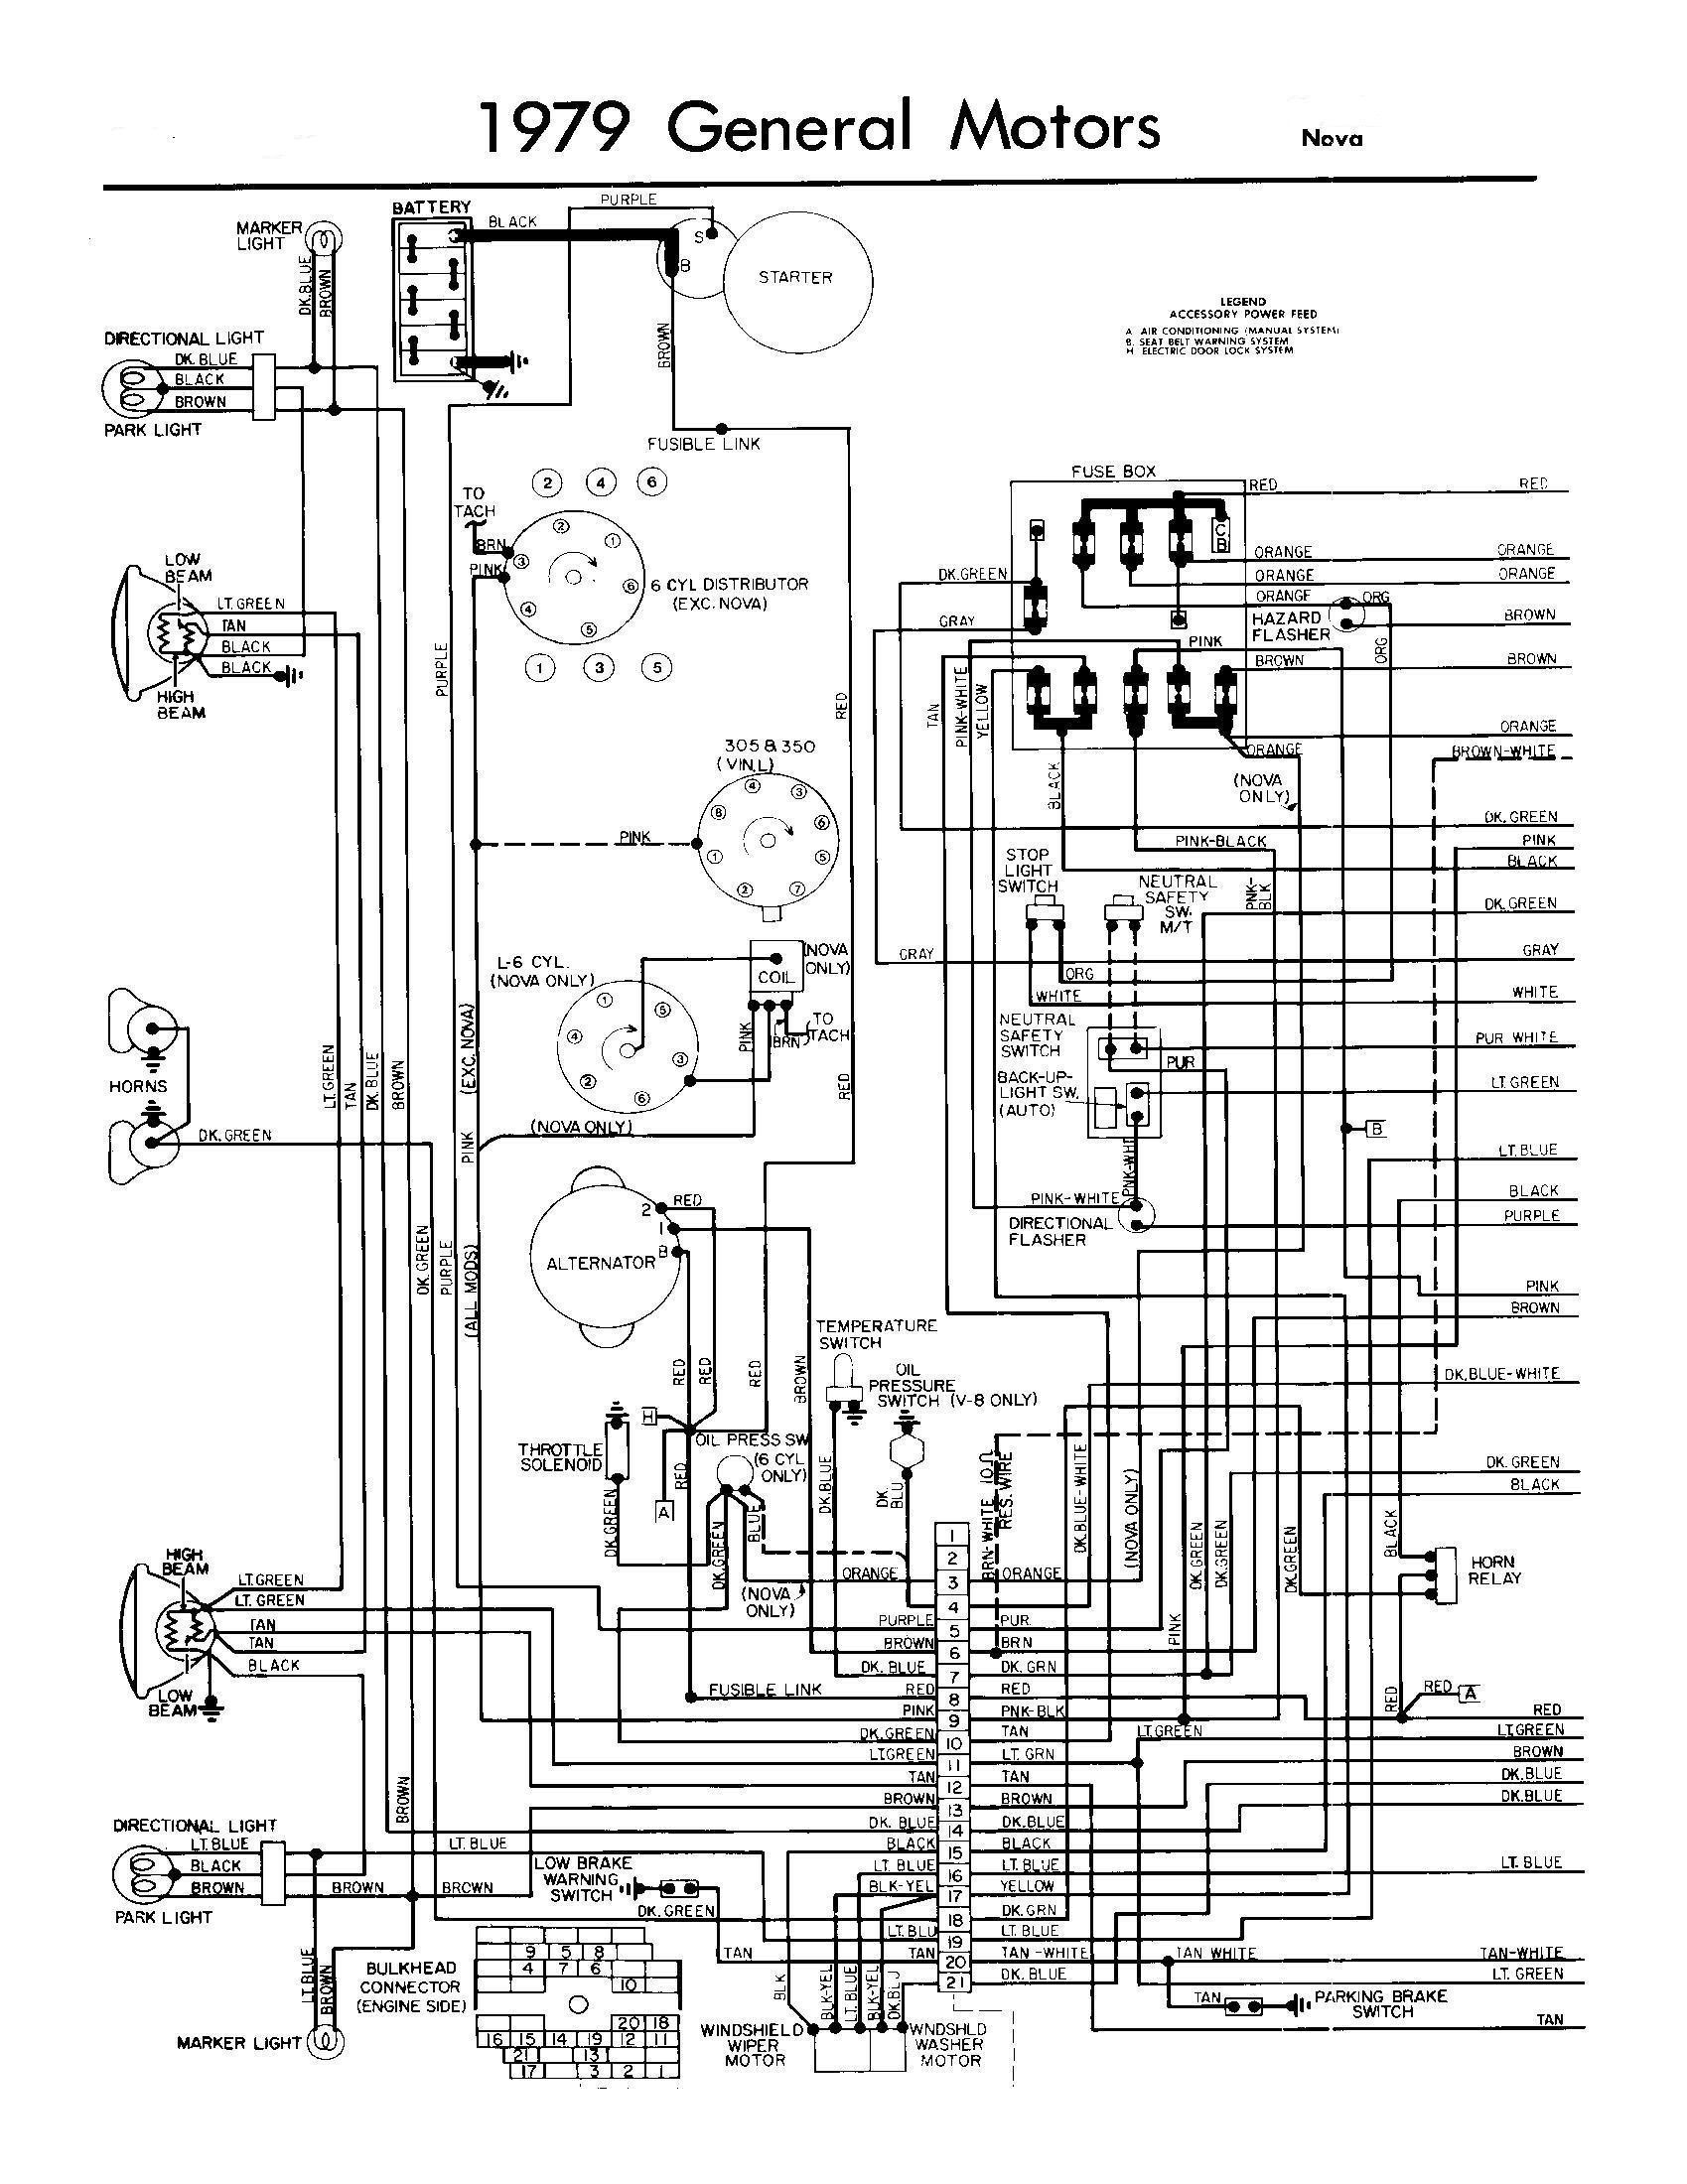 Caterpillar Marine Engine Wiring Diagram Alternator Wiring Diagram Chevy S Best Engine Starter Diagram Chevy Truck Wiring Diagram Circuit Of Alternator Wiring Diagram Chevy